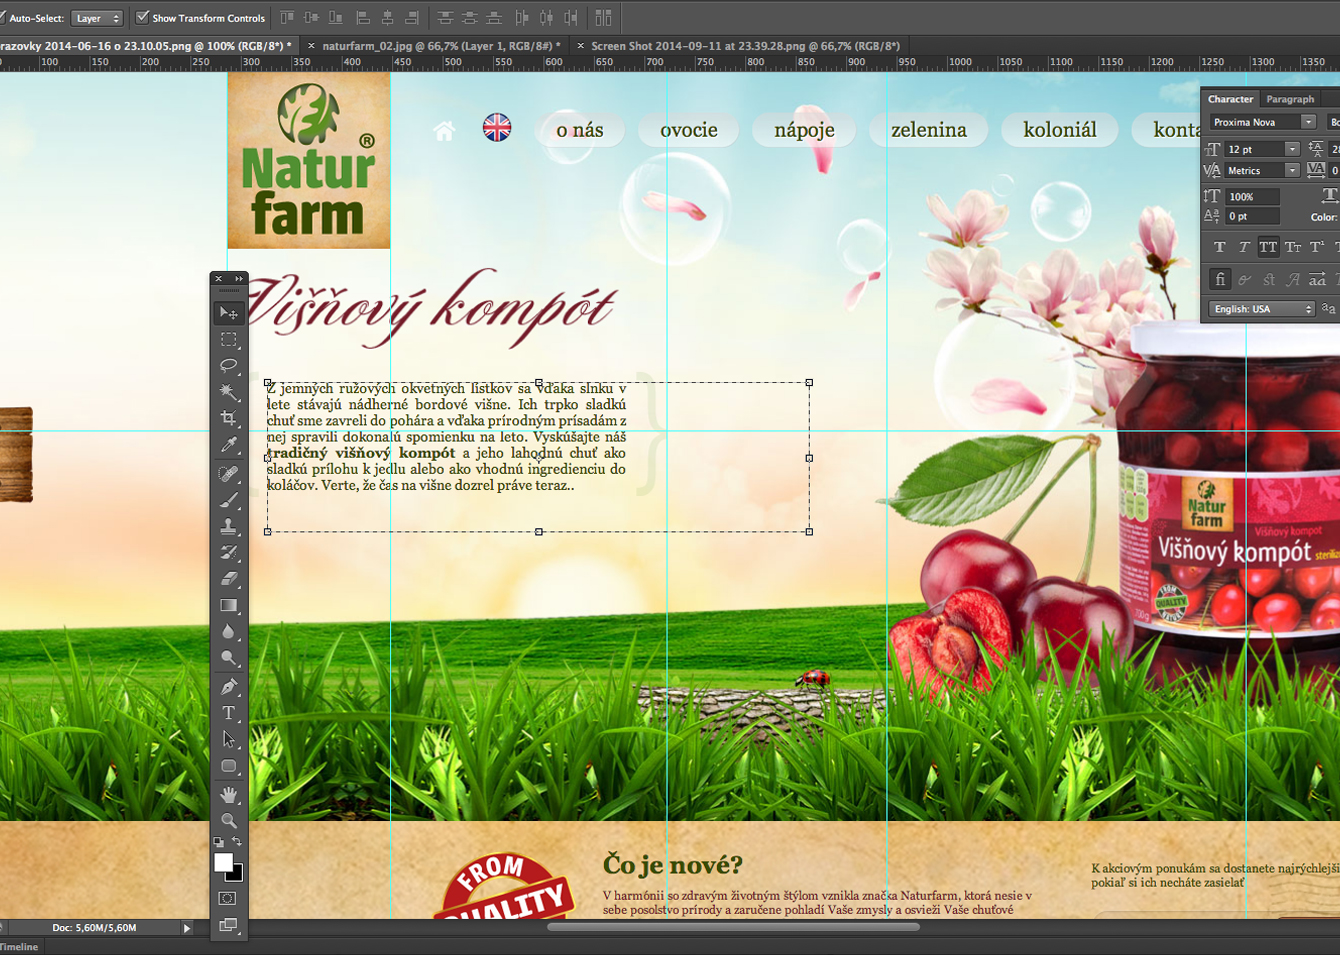 Natur farm web